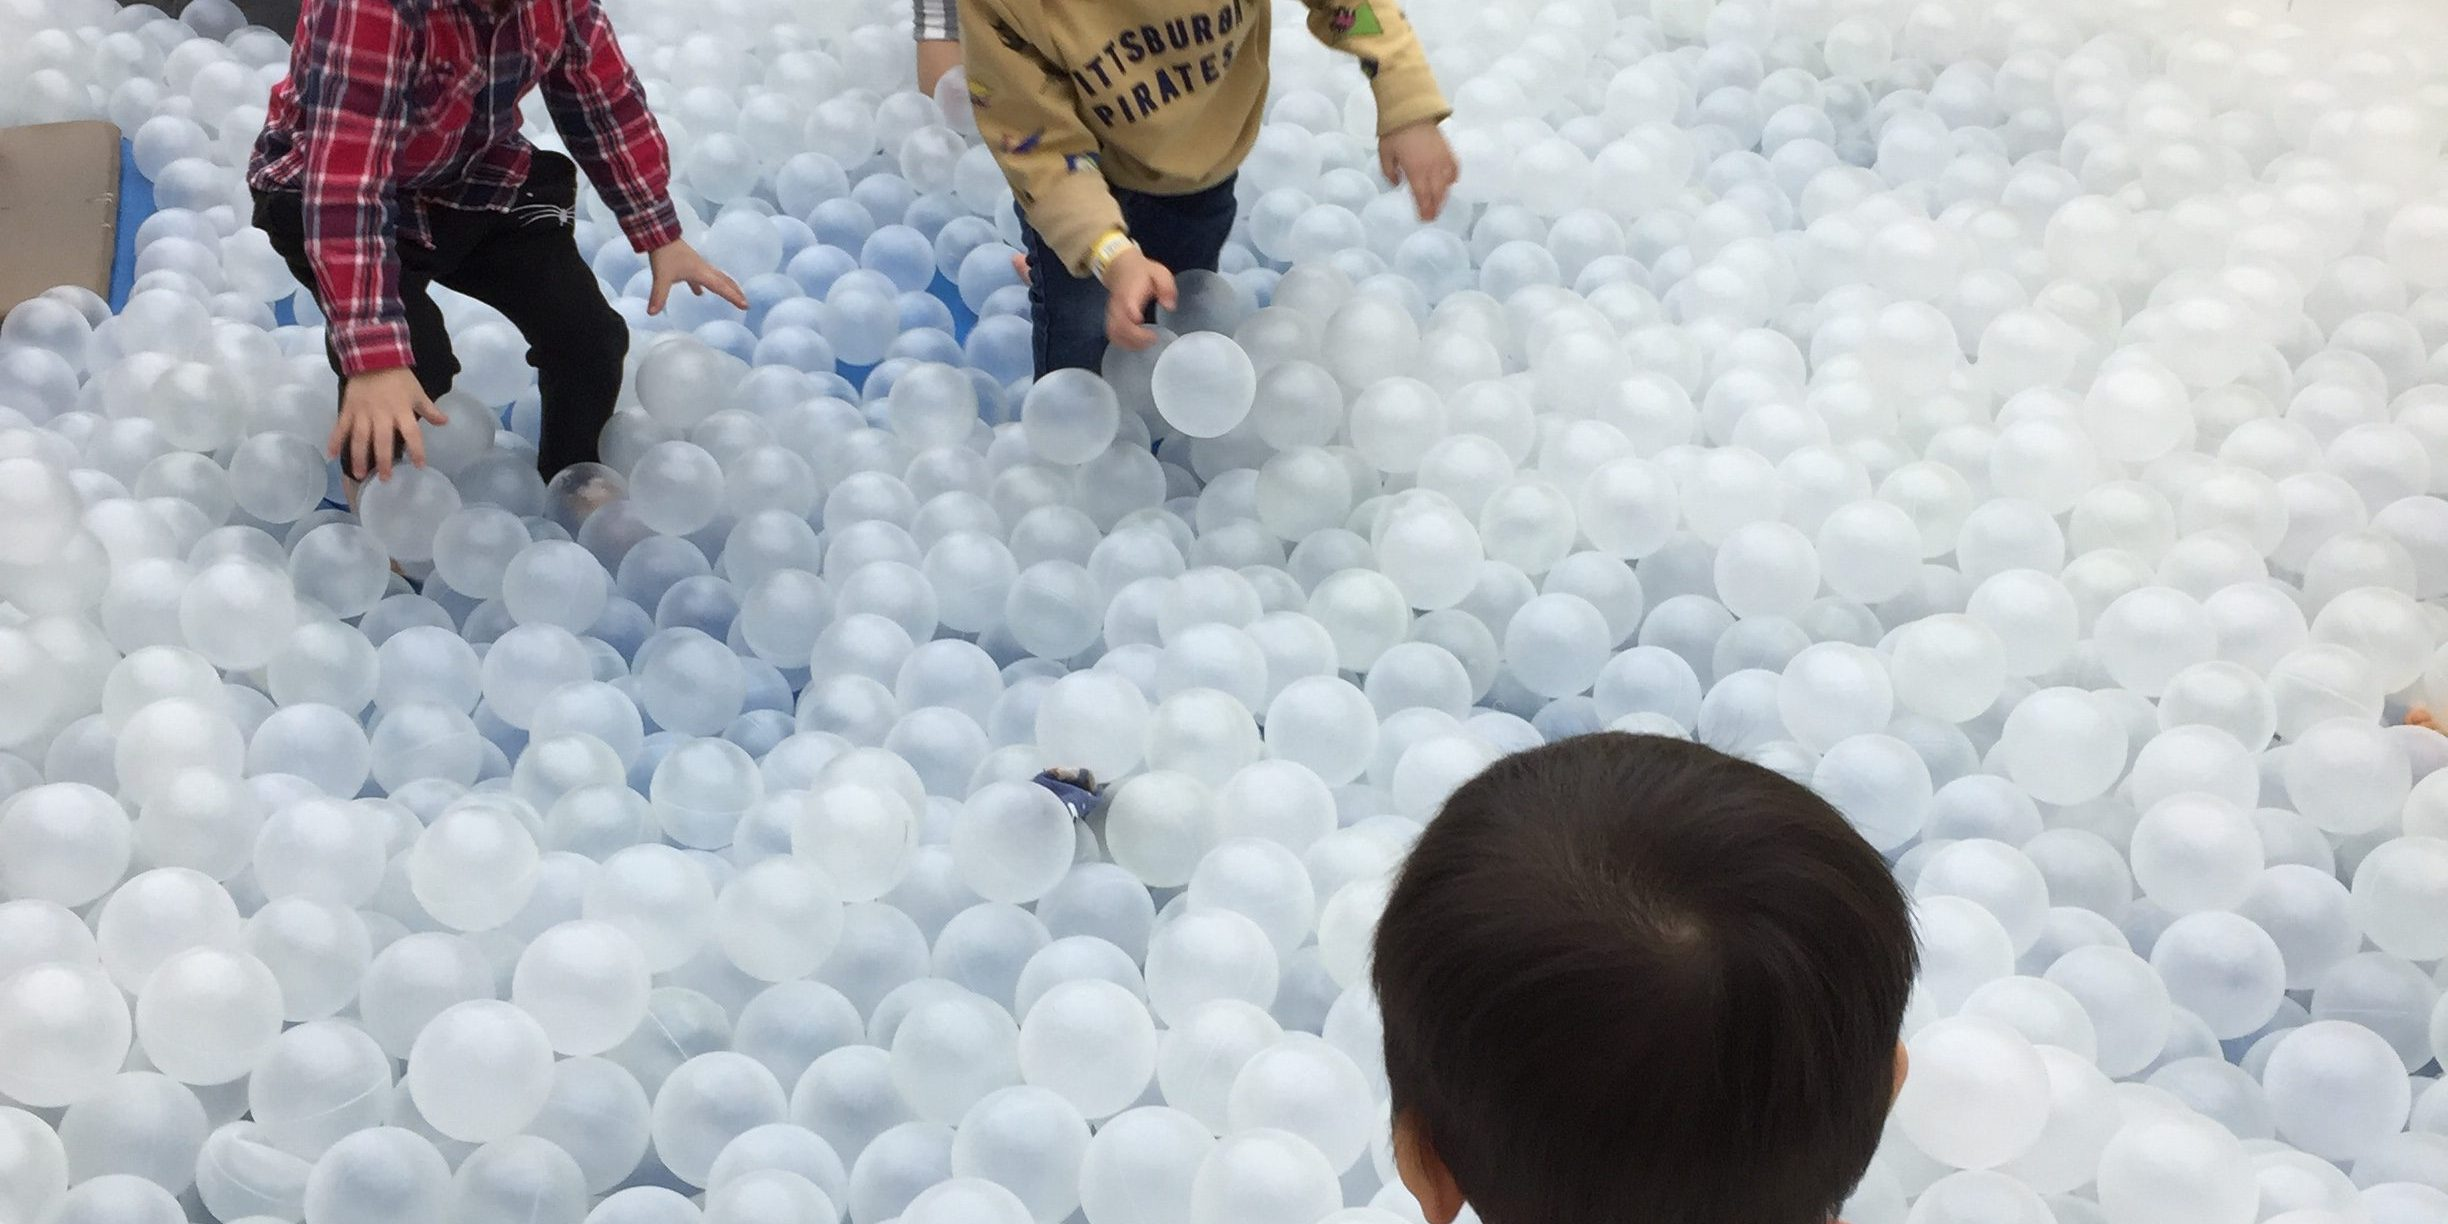 Ball Pit at Pororo Lounge